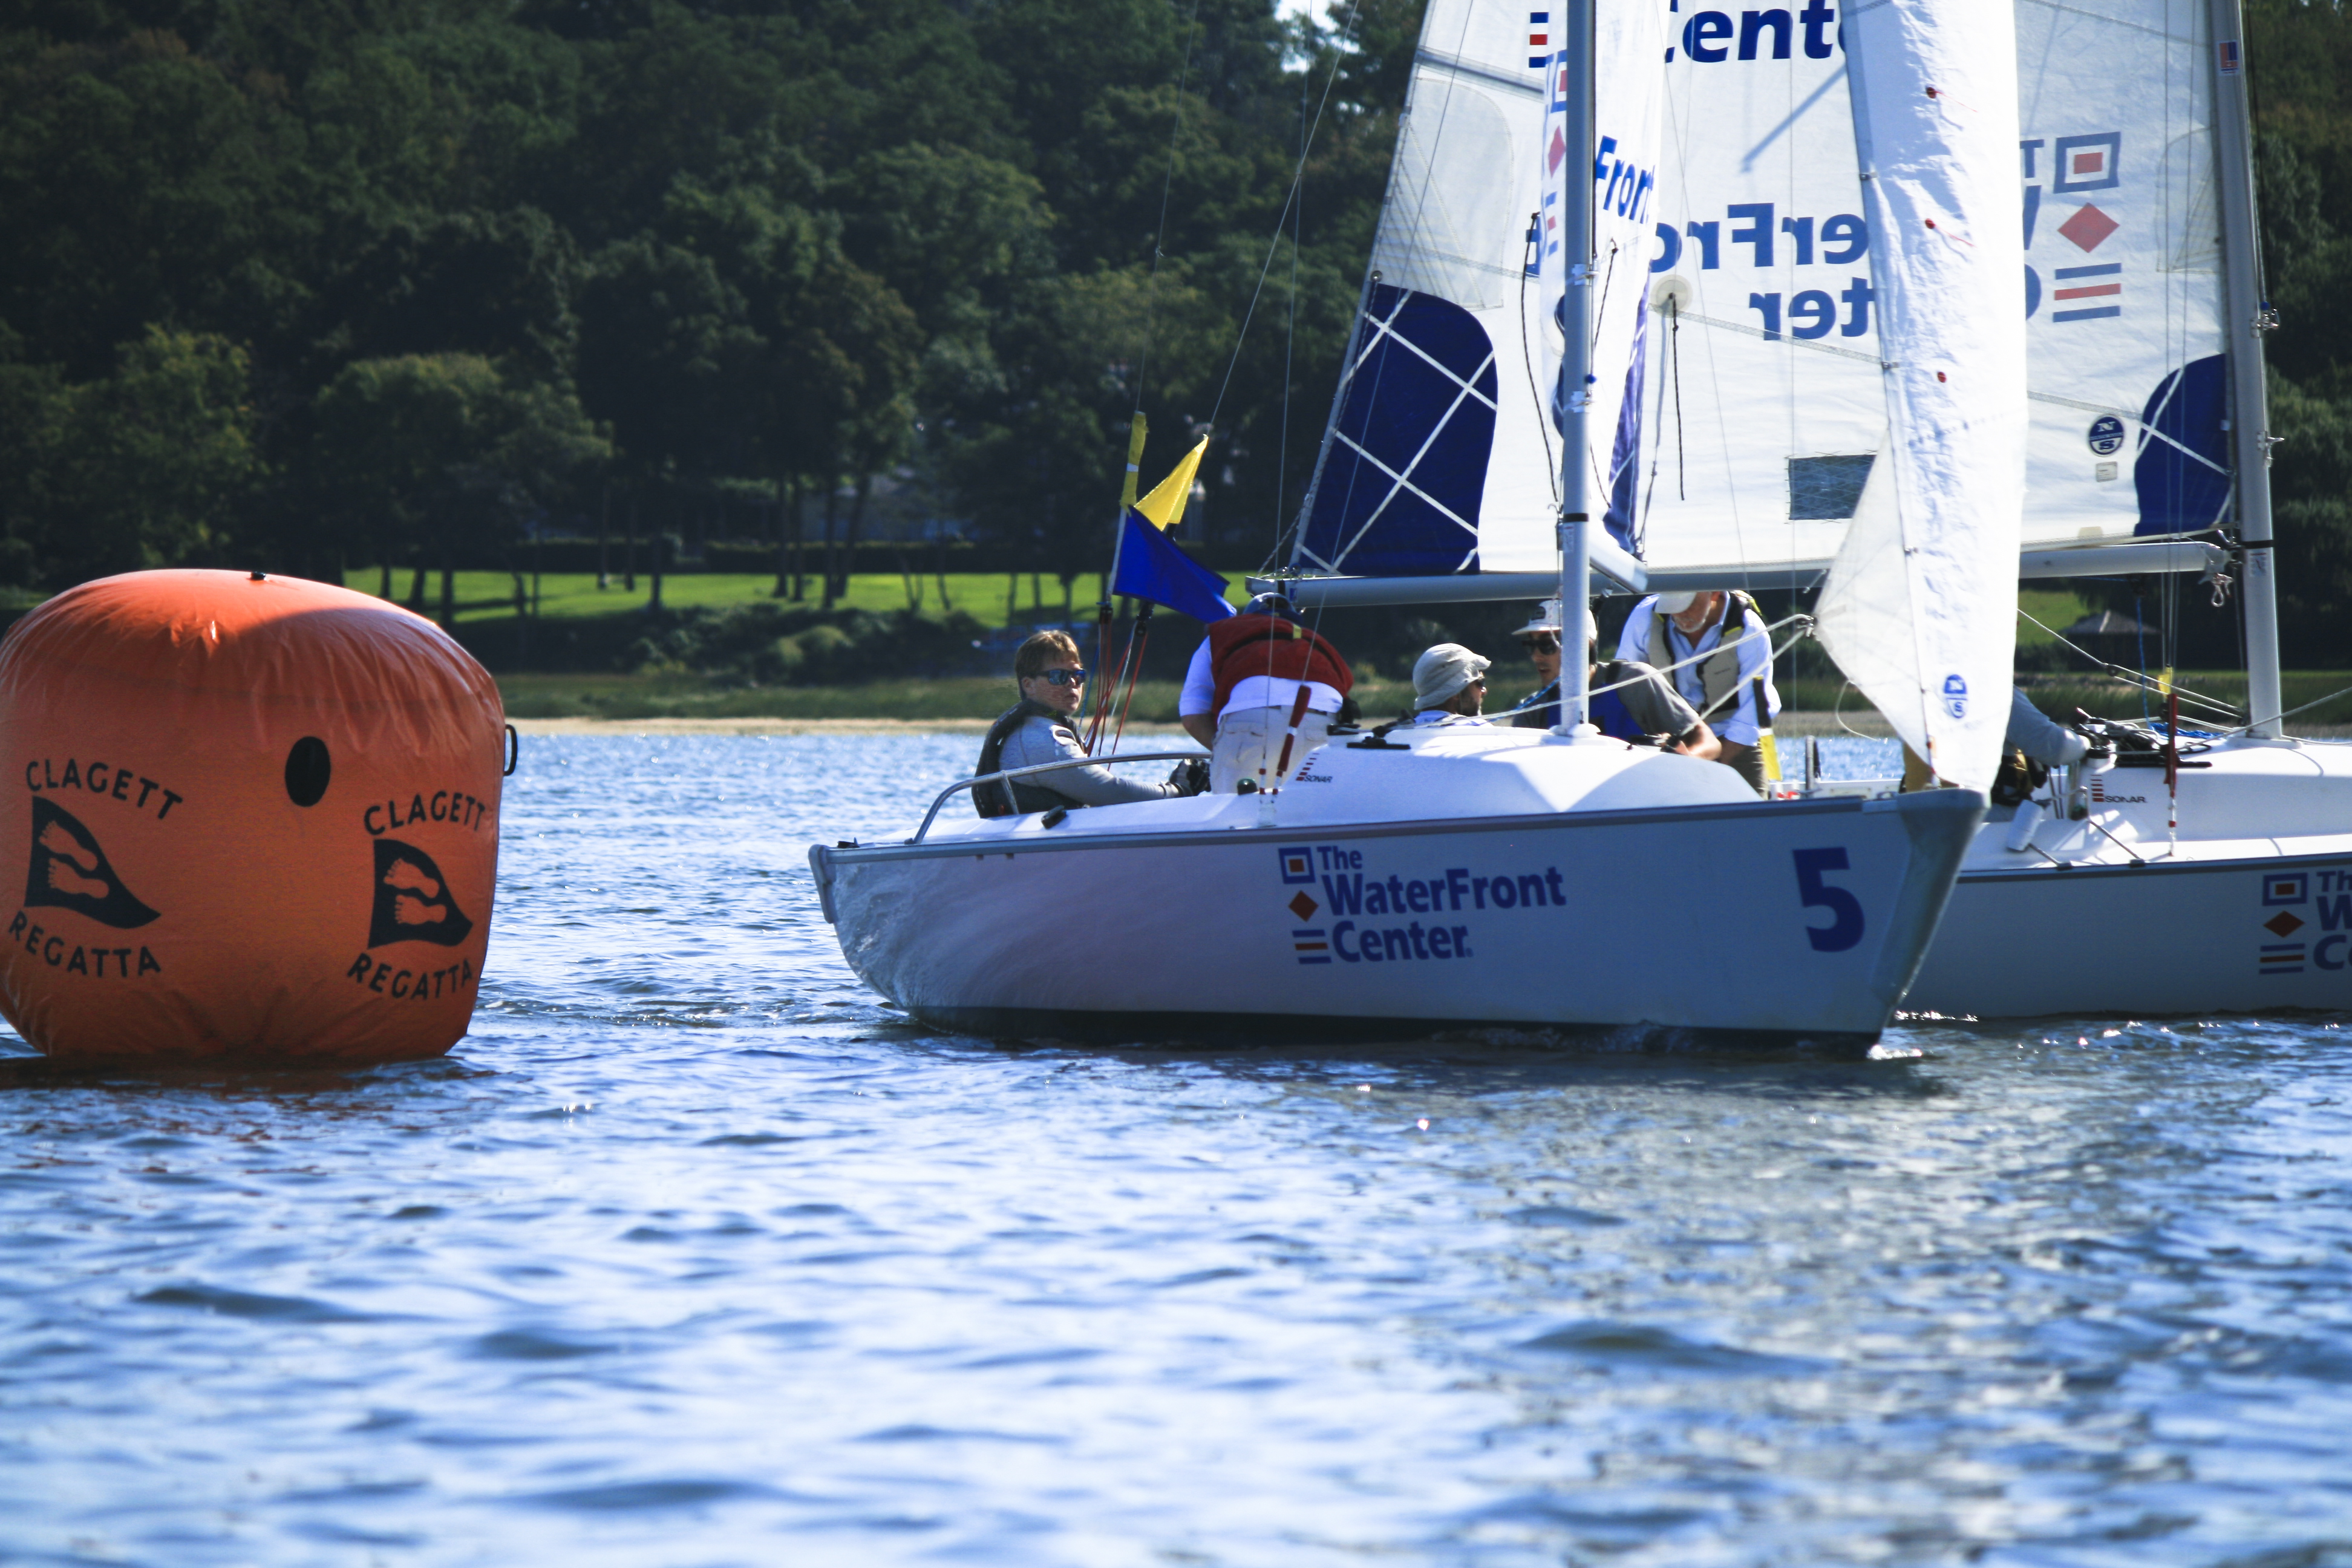 Invitations are open for the fourth Clagett/Oakcliff Match Racing Clinic and Regatta